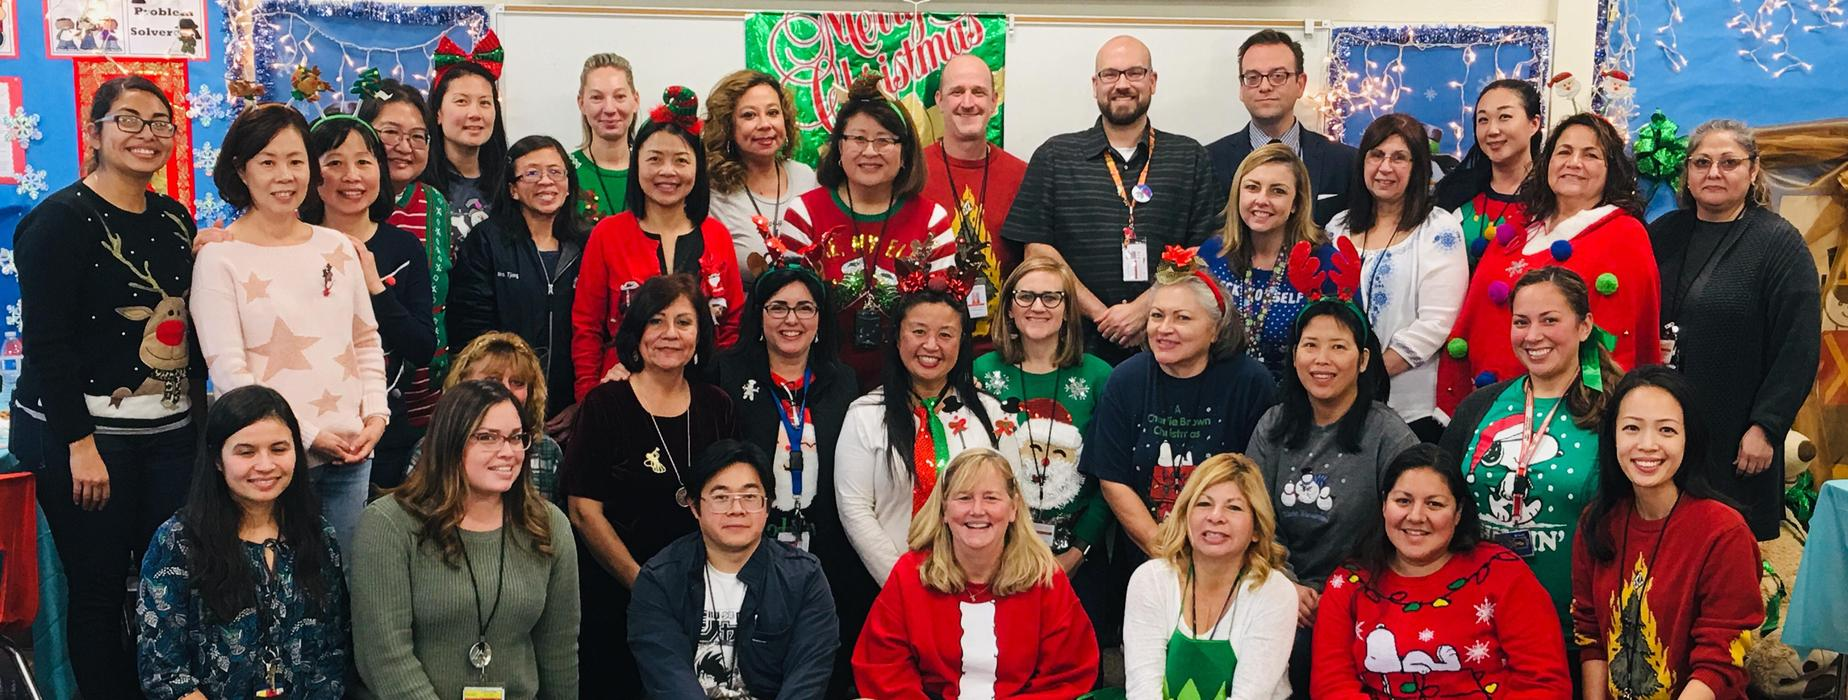 Northrup Staff and Faculty during the Holidays